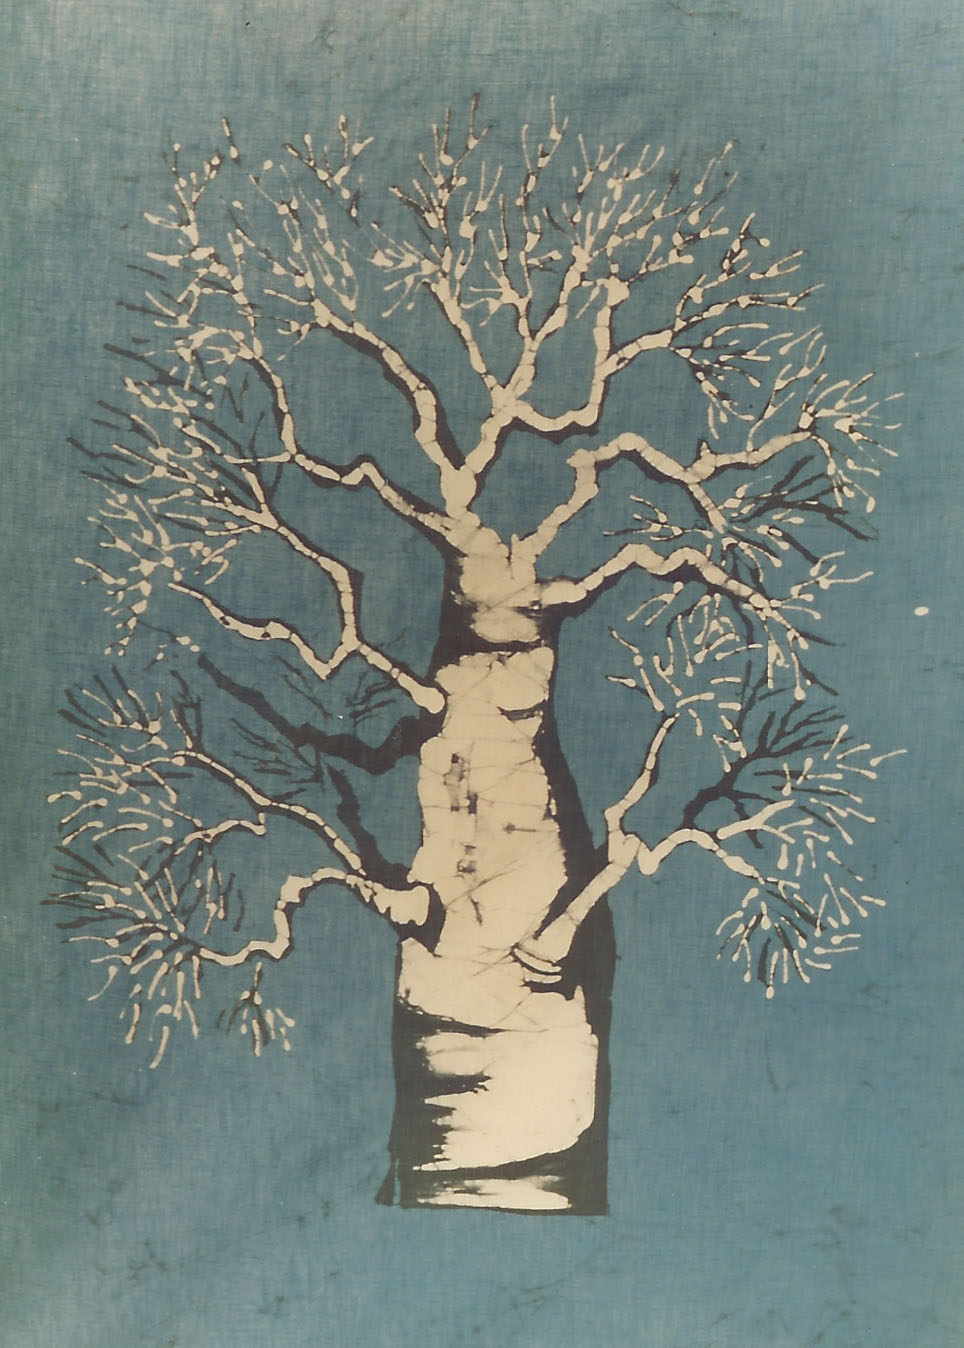 In the early days Els made many one-of-a-kind pieces, like this Baobab Tree.